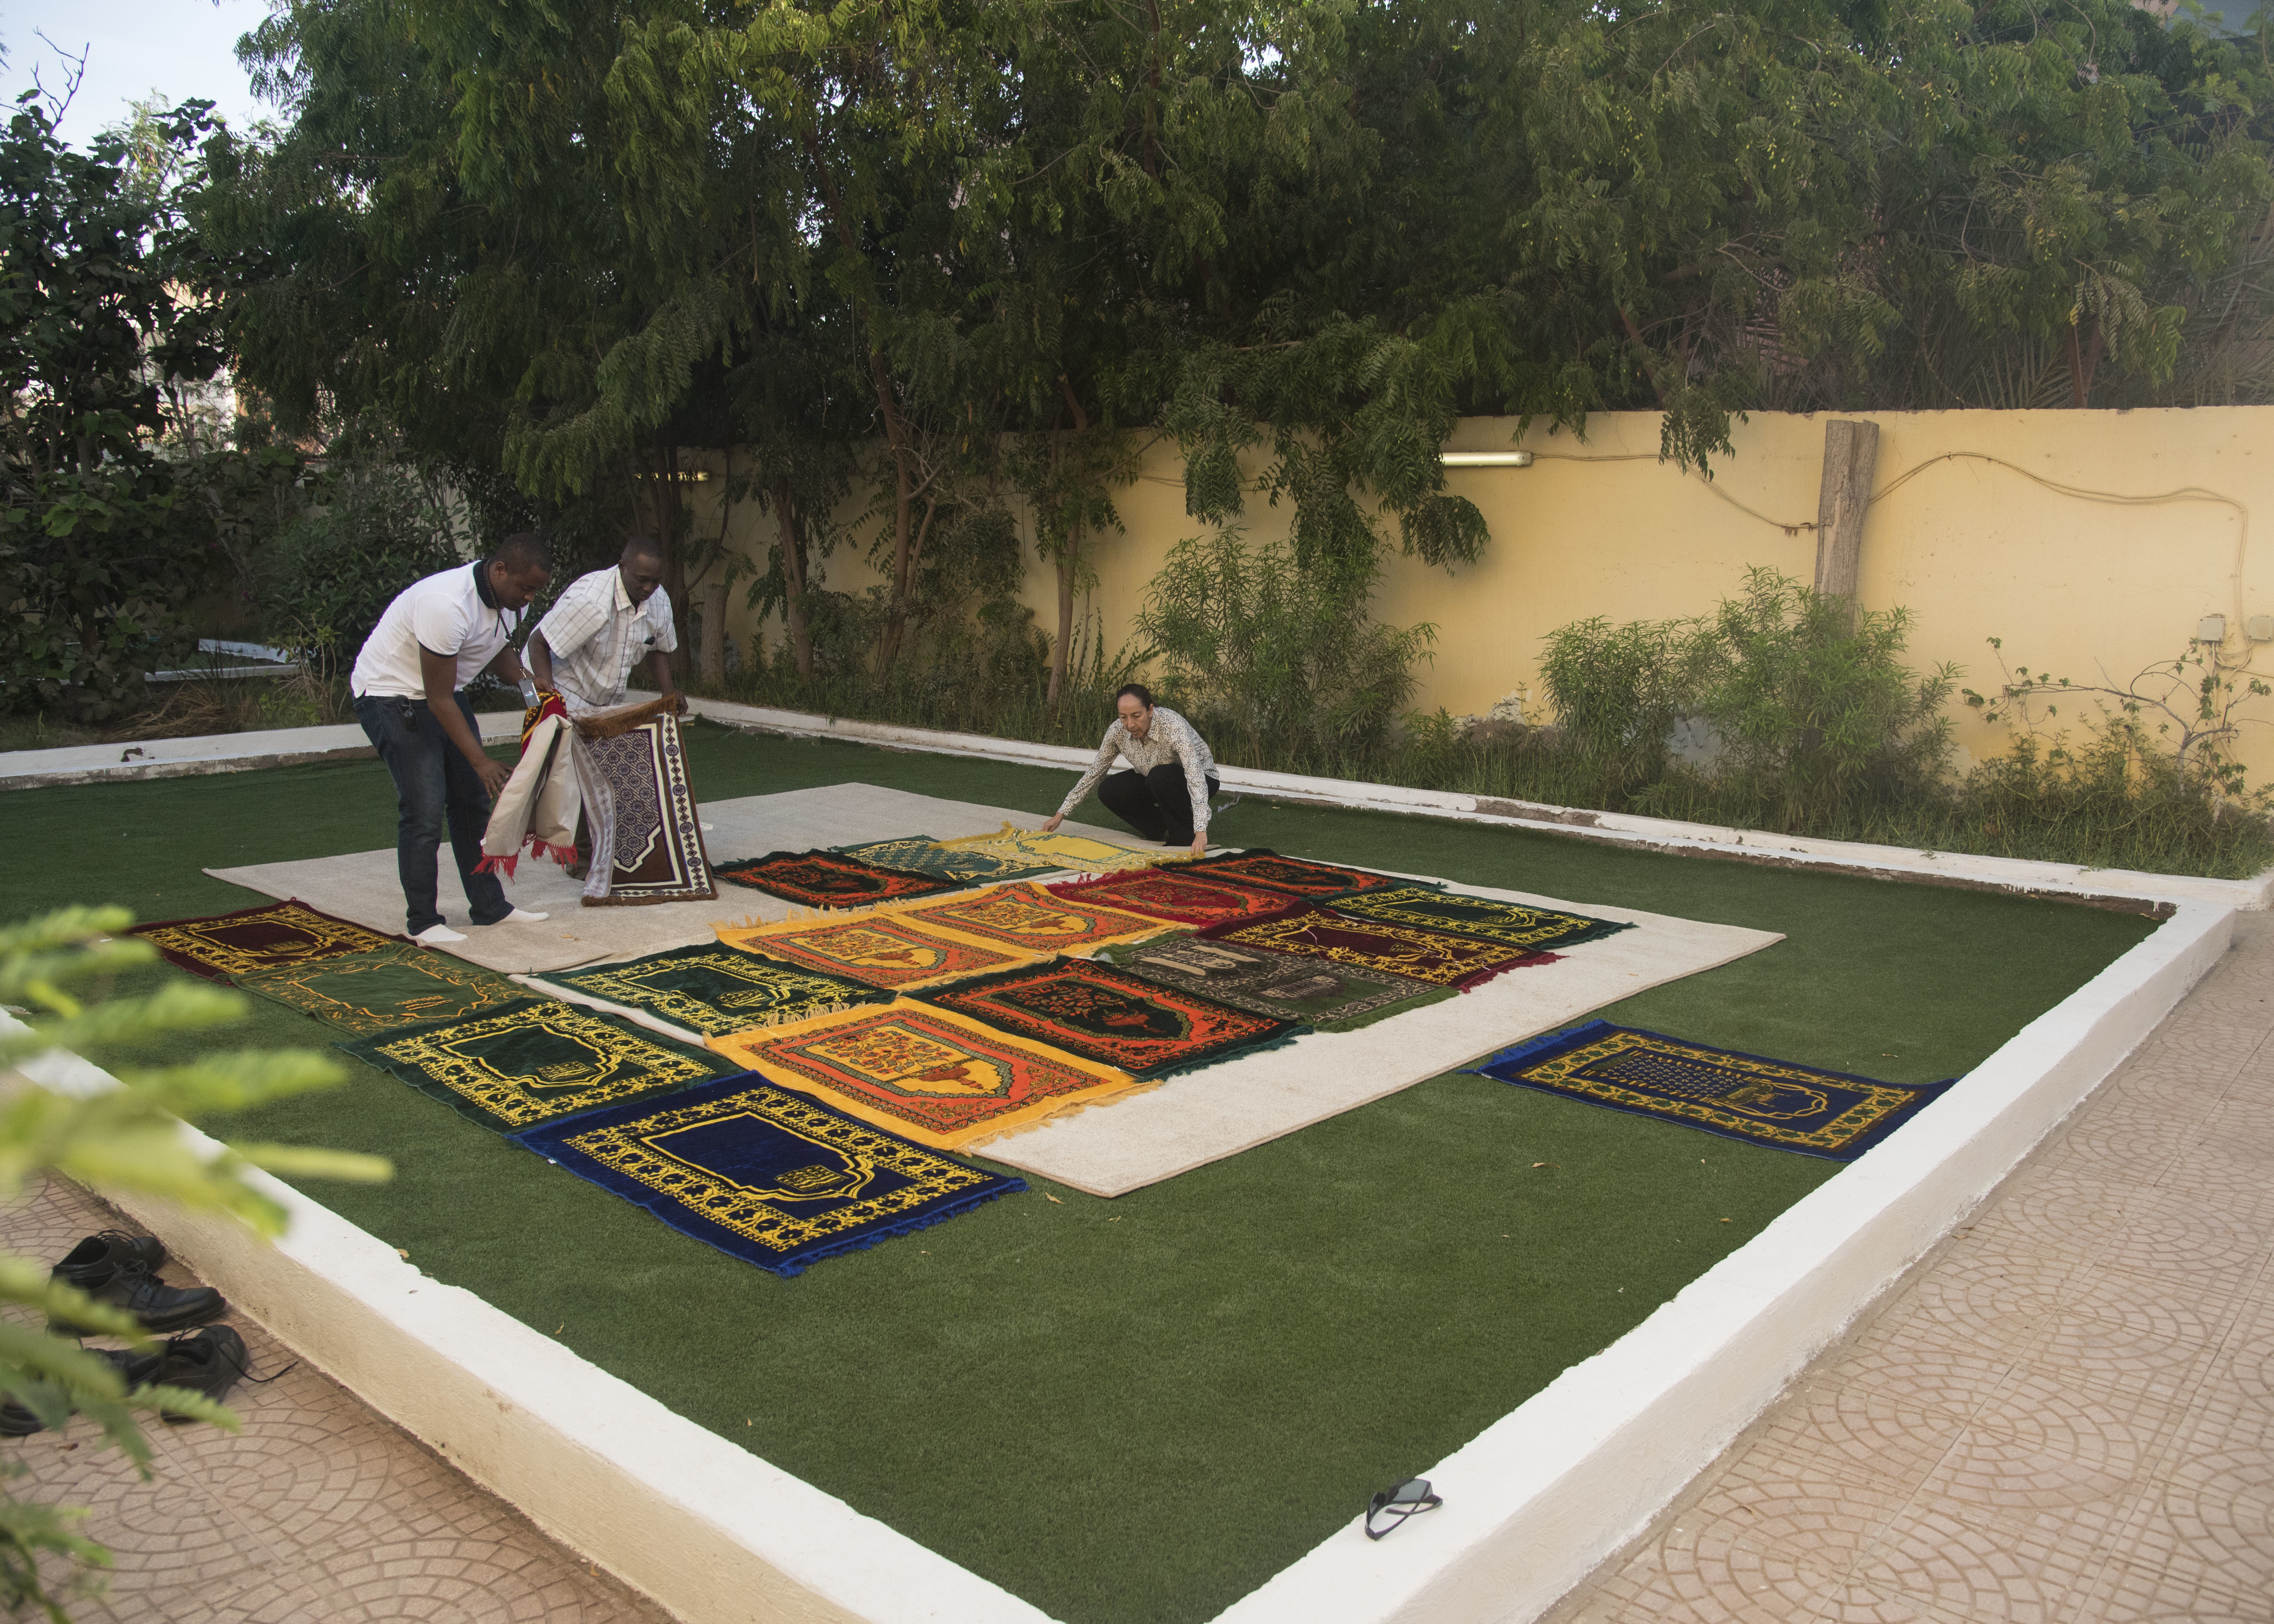 People prepare prayer rugs for an Iftar celebration at the home of U.S. Embassy Djibouti's senior defense attaché in Djibouti, May 12, 2019. The Iftar is a fast-breaking meal Muslims eat after sunset during Ramadan, the ninth month of the Islamic year observed with daily fasting from dawn to sunset. (U.S. Air Force photo by Staff Sgt. Kirsten Brandes)